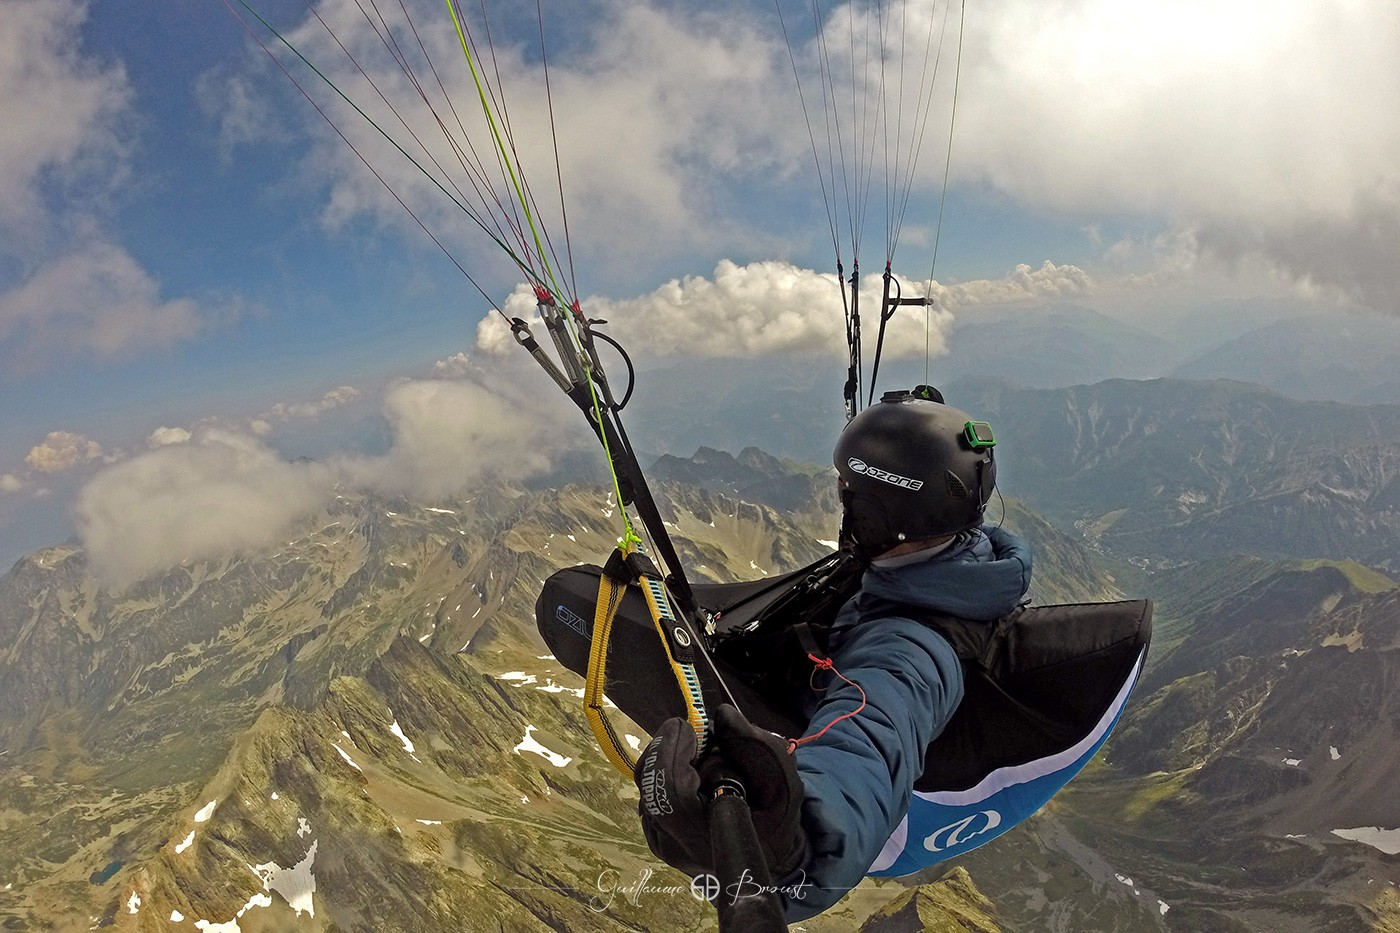 Guillaume Broust - Paragliding over Rocher Blanc, Belledonne ©Guillaume Broust